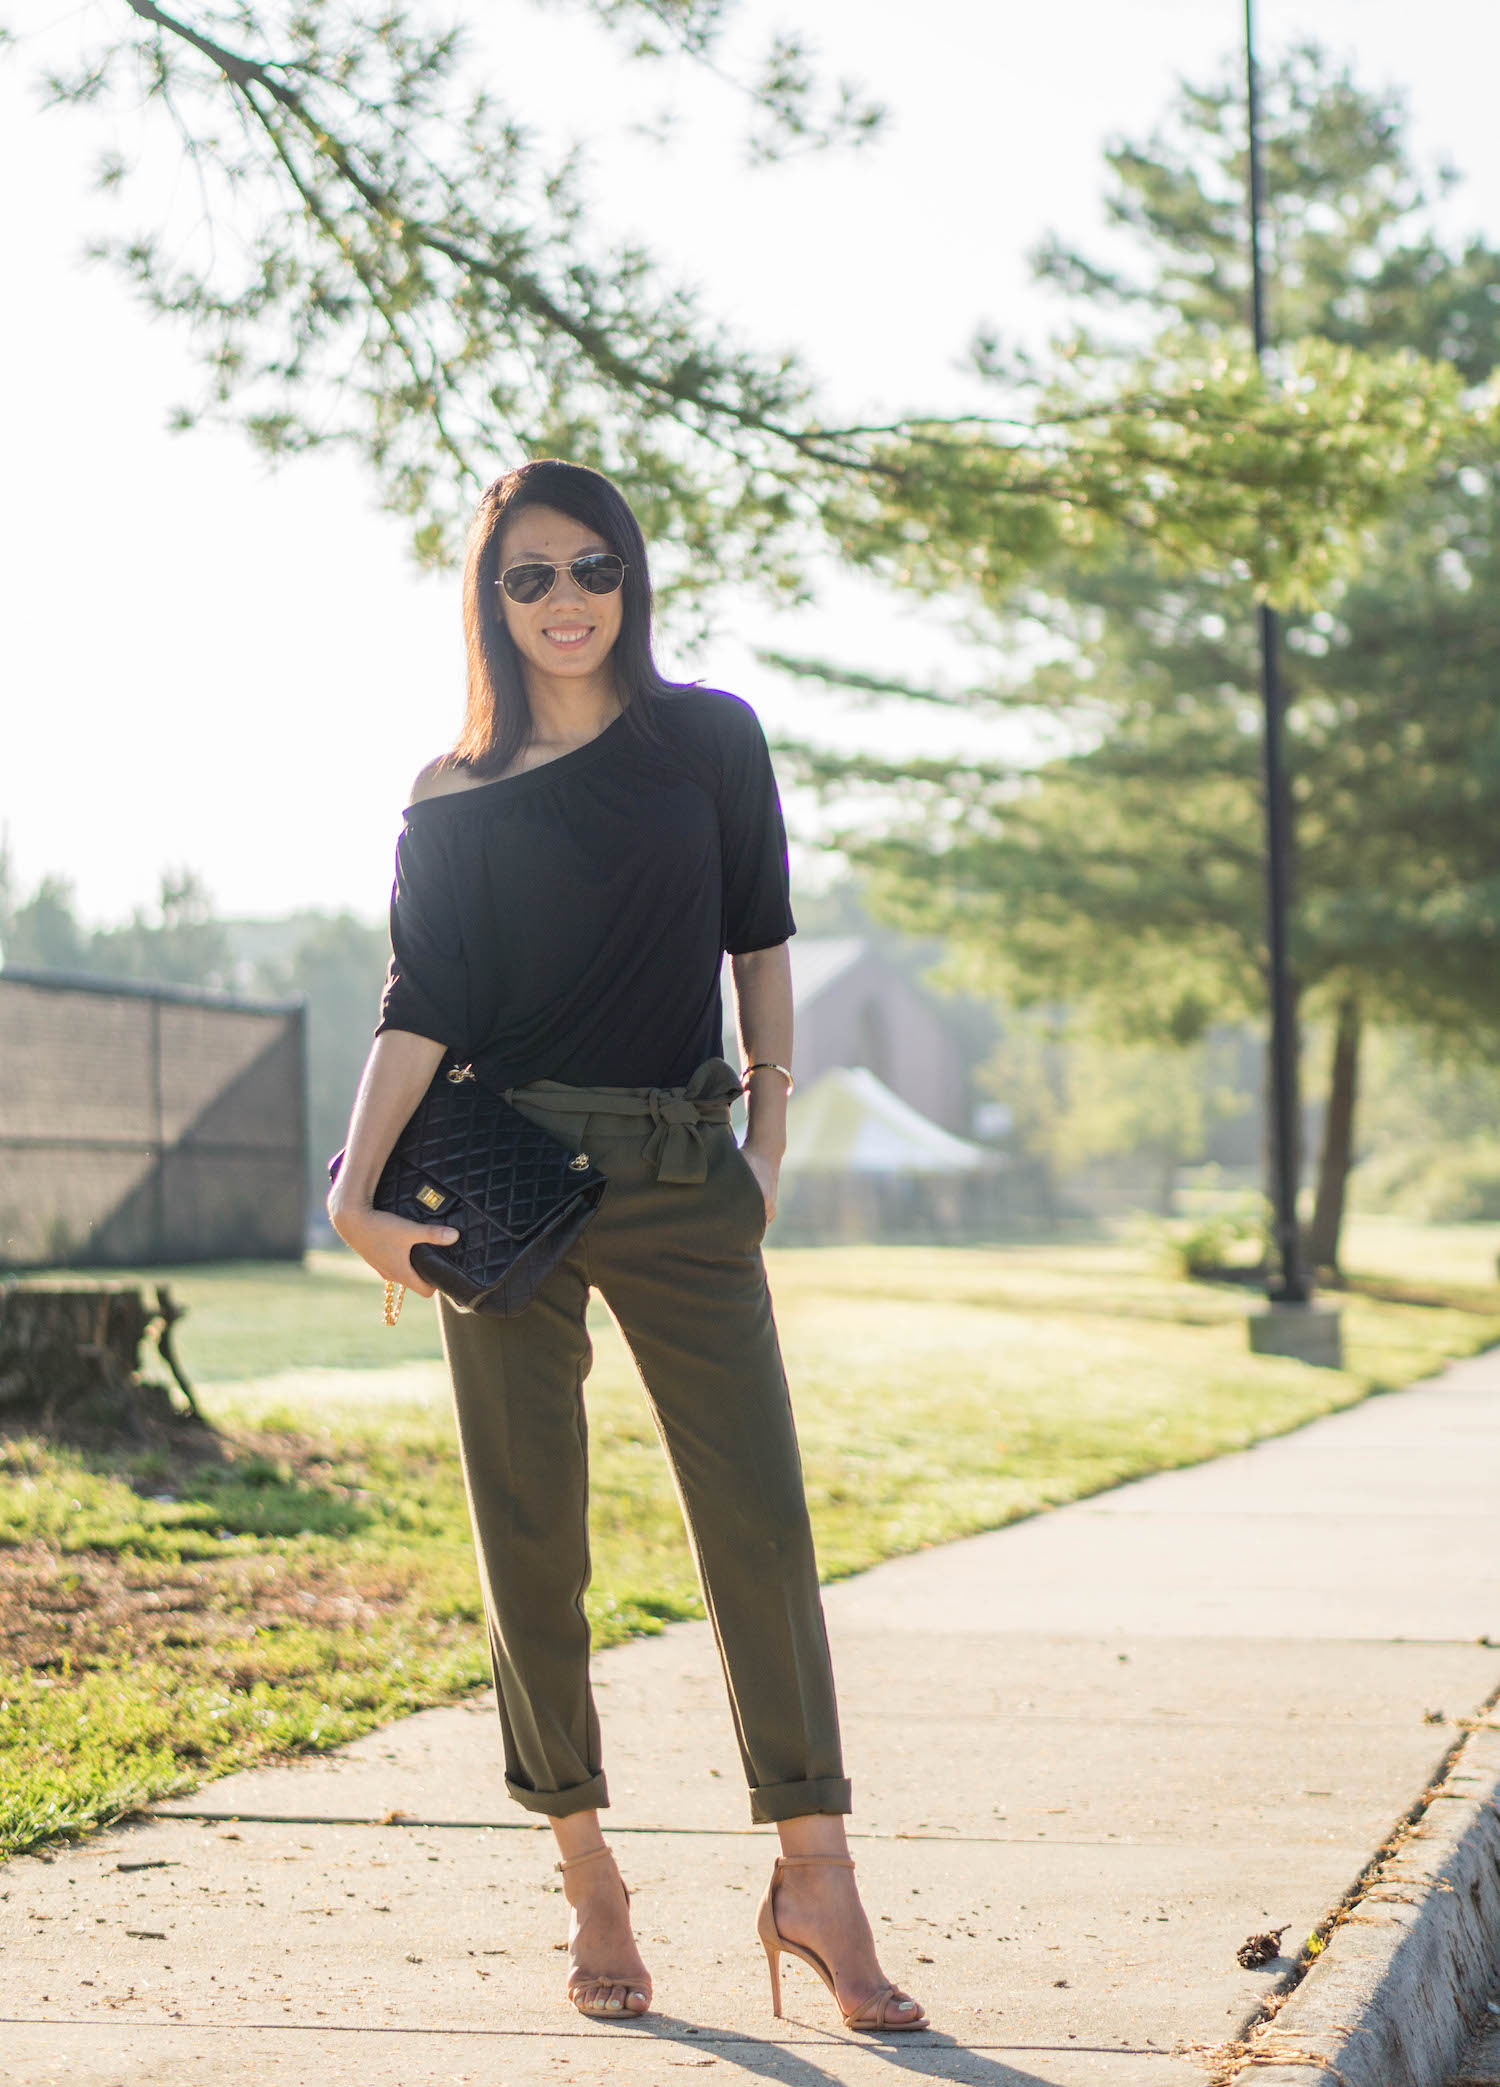 Ann Taylor black matte jersey off the shoulder top, Ann Taylor gold bangle, Chanel reissue in 226, Ann Taylor the ankle pant with tie waist, Schutz Rhana sandals